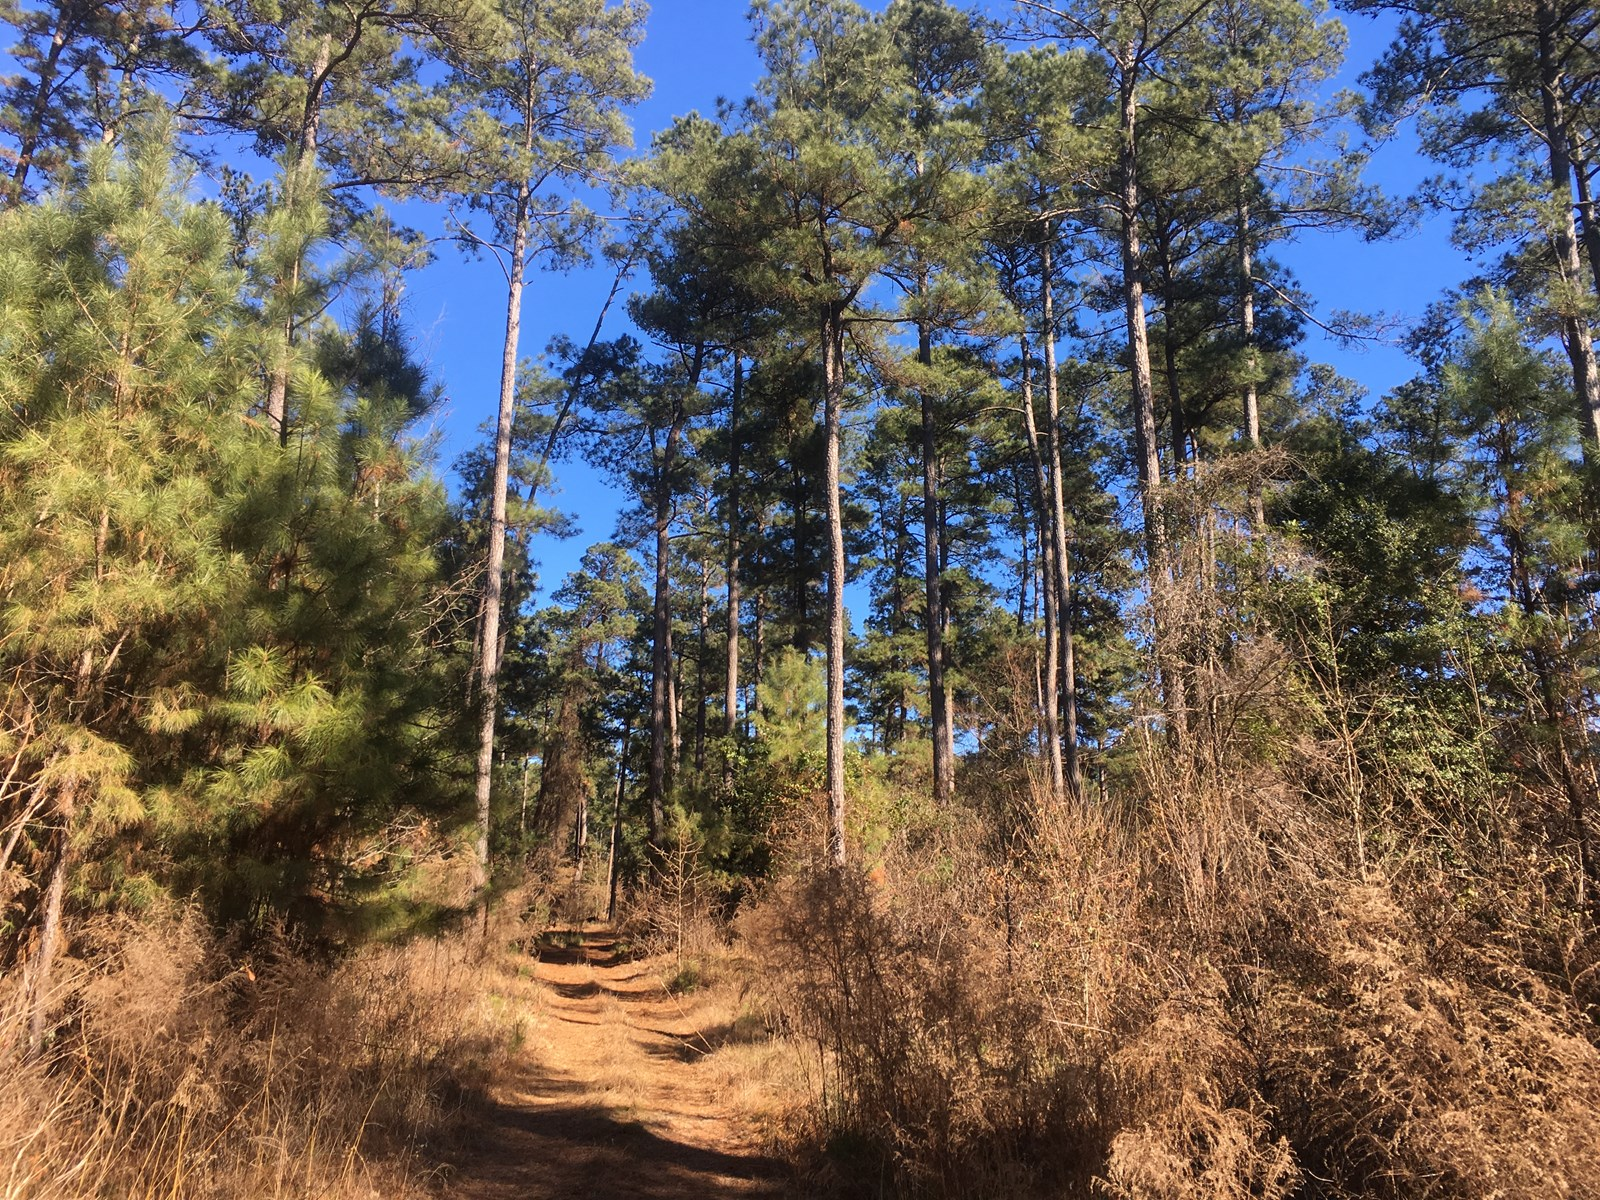 Union County Timberland and Mineral Rights for Sale 09/20/18